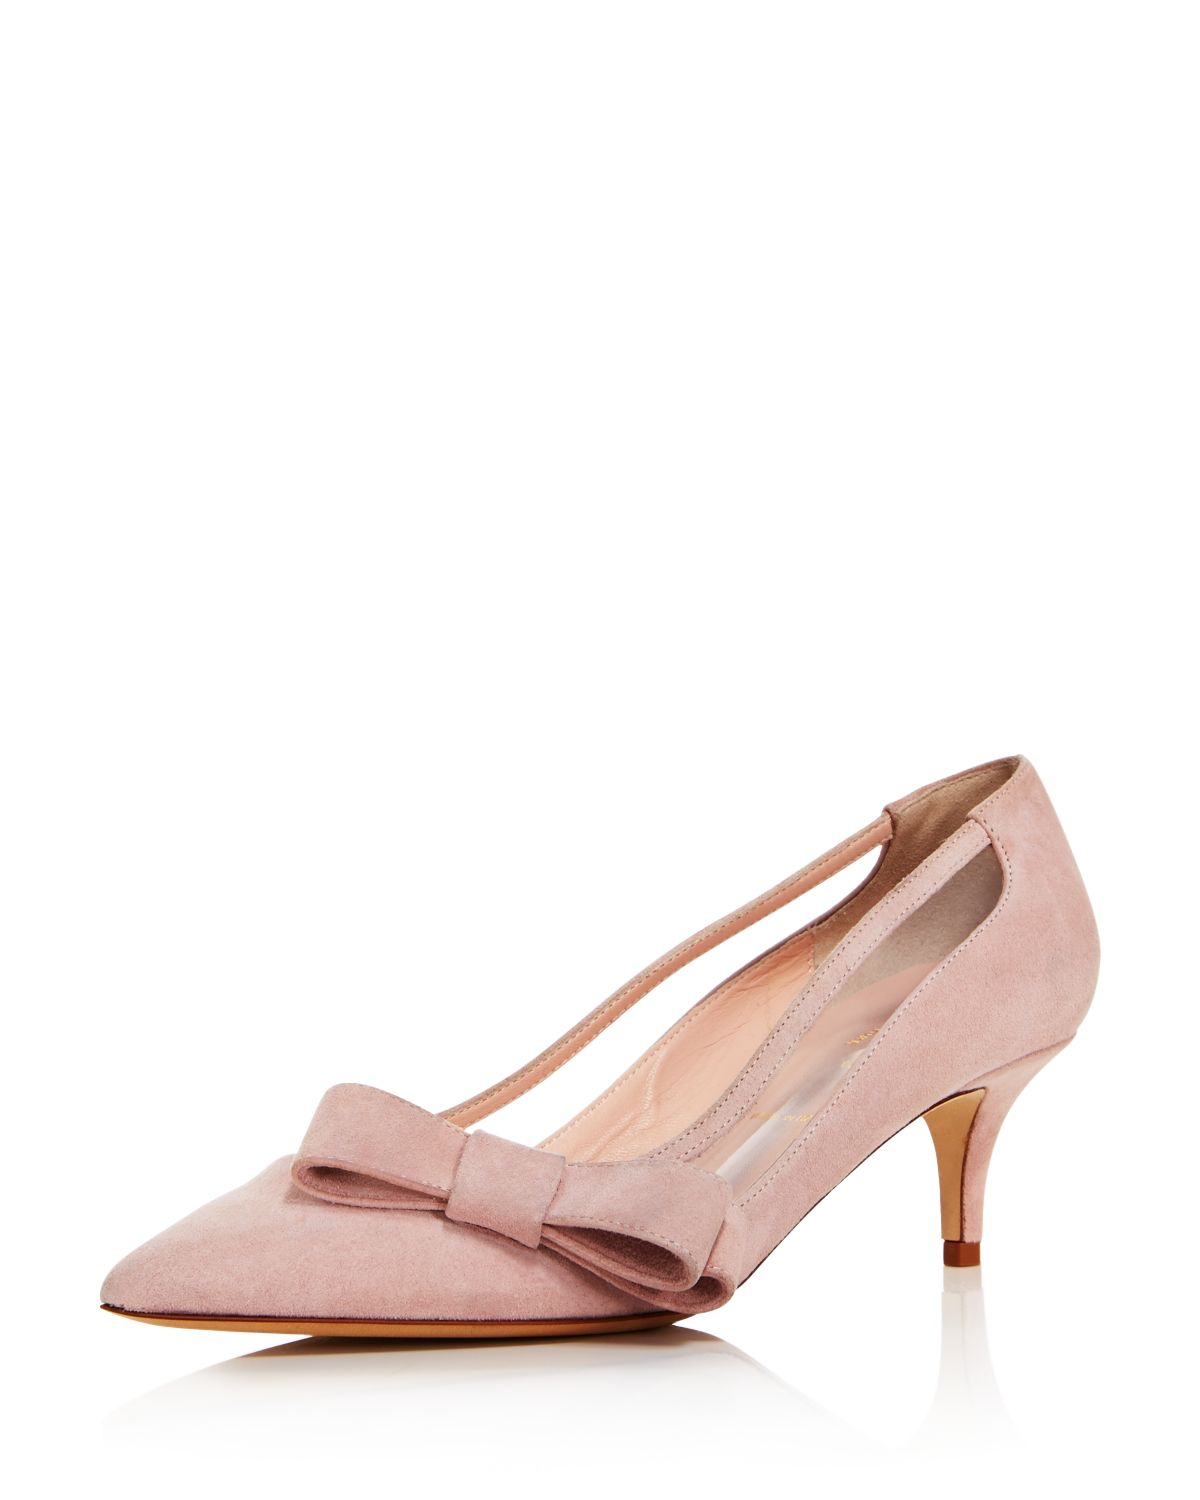 kate spade new york Mackenzie Suede Bow Mid-Heel Pumps $278 (Bloomingdales)